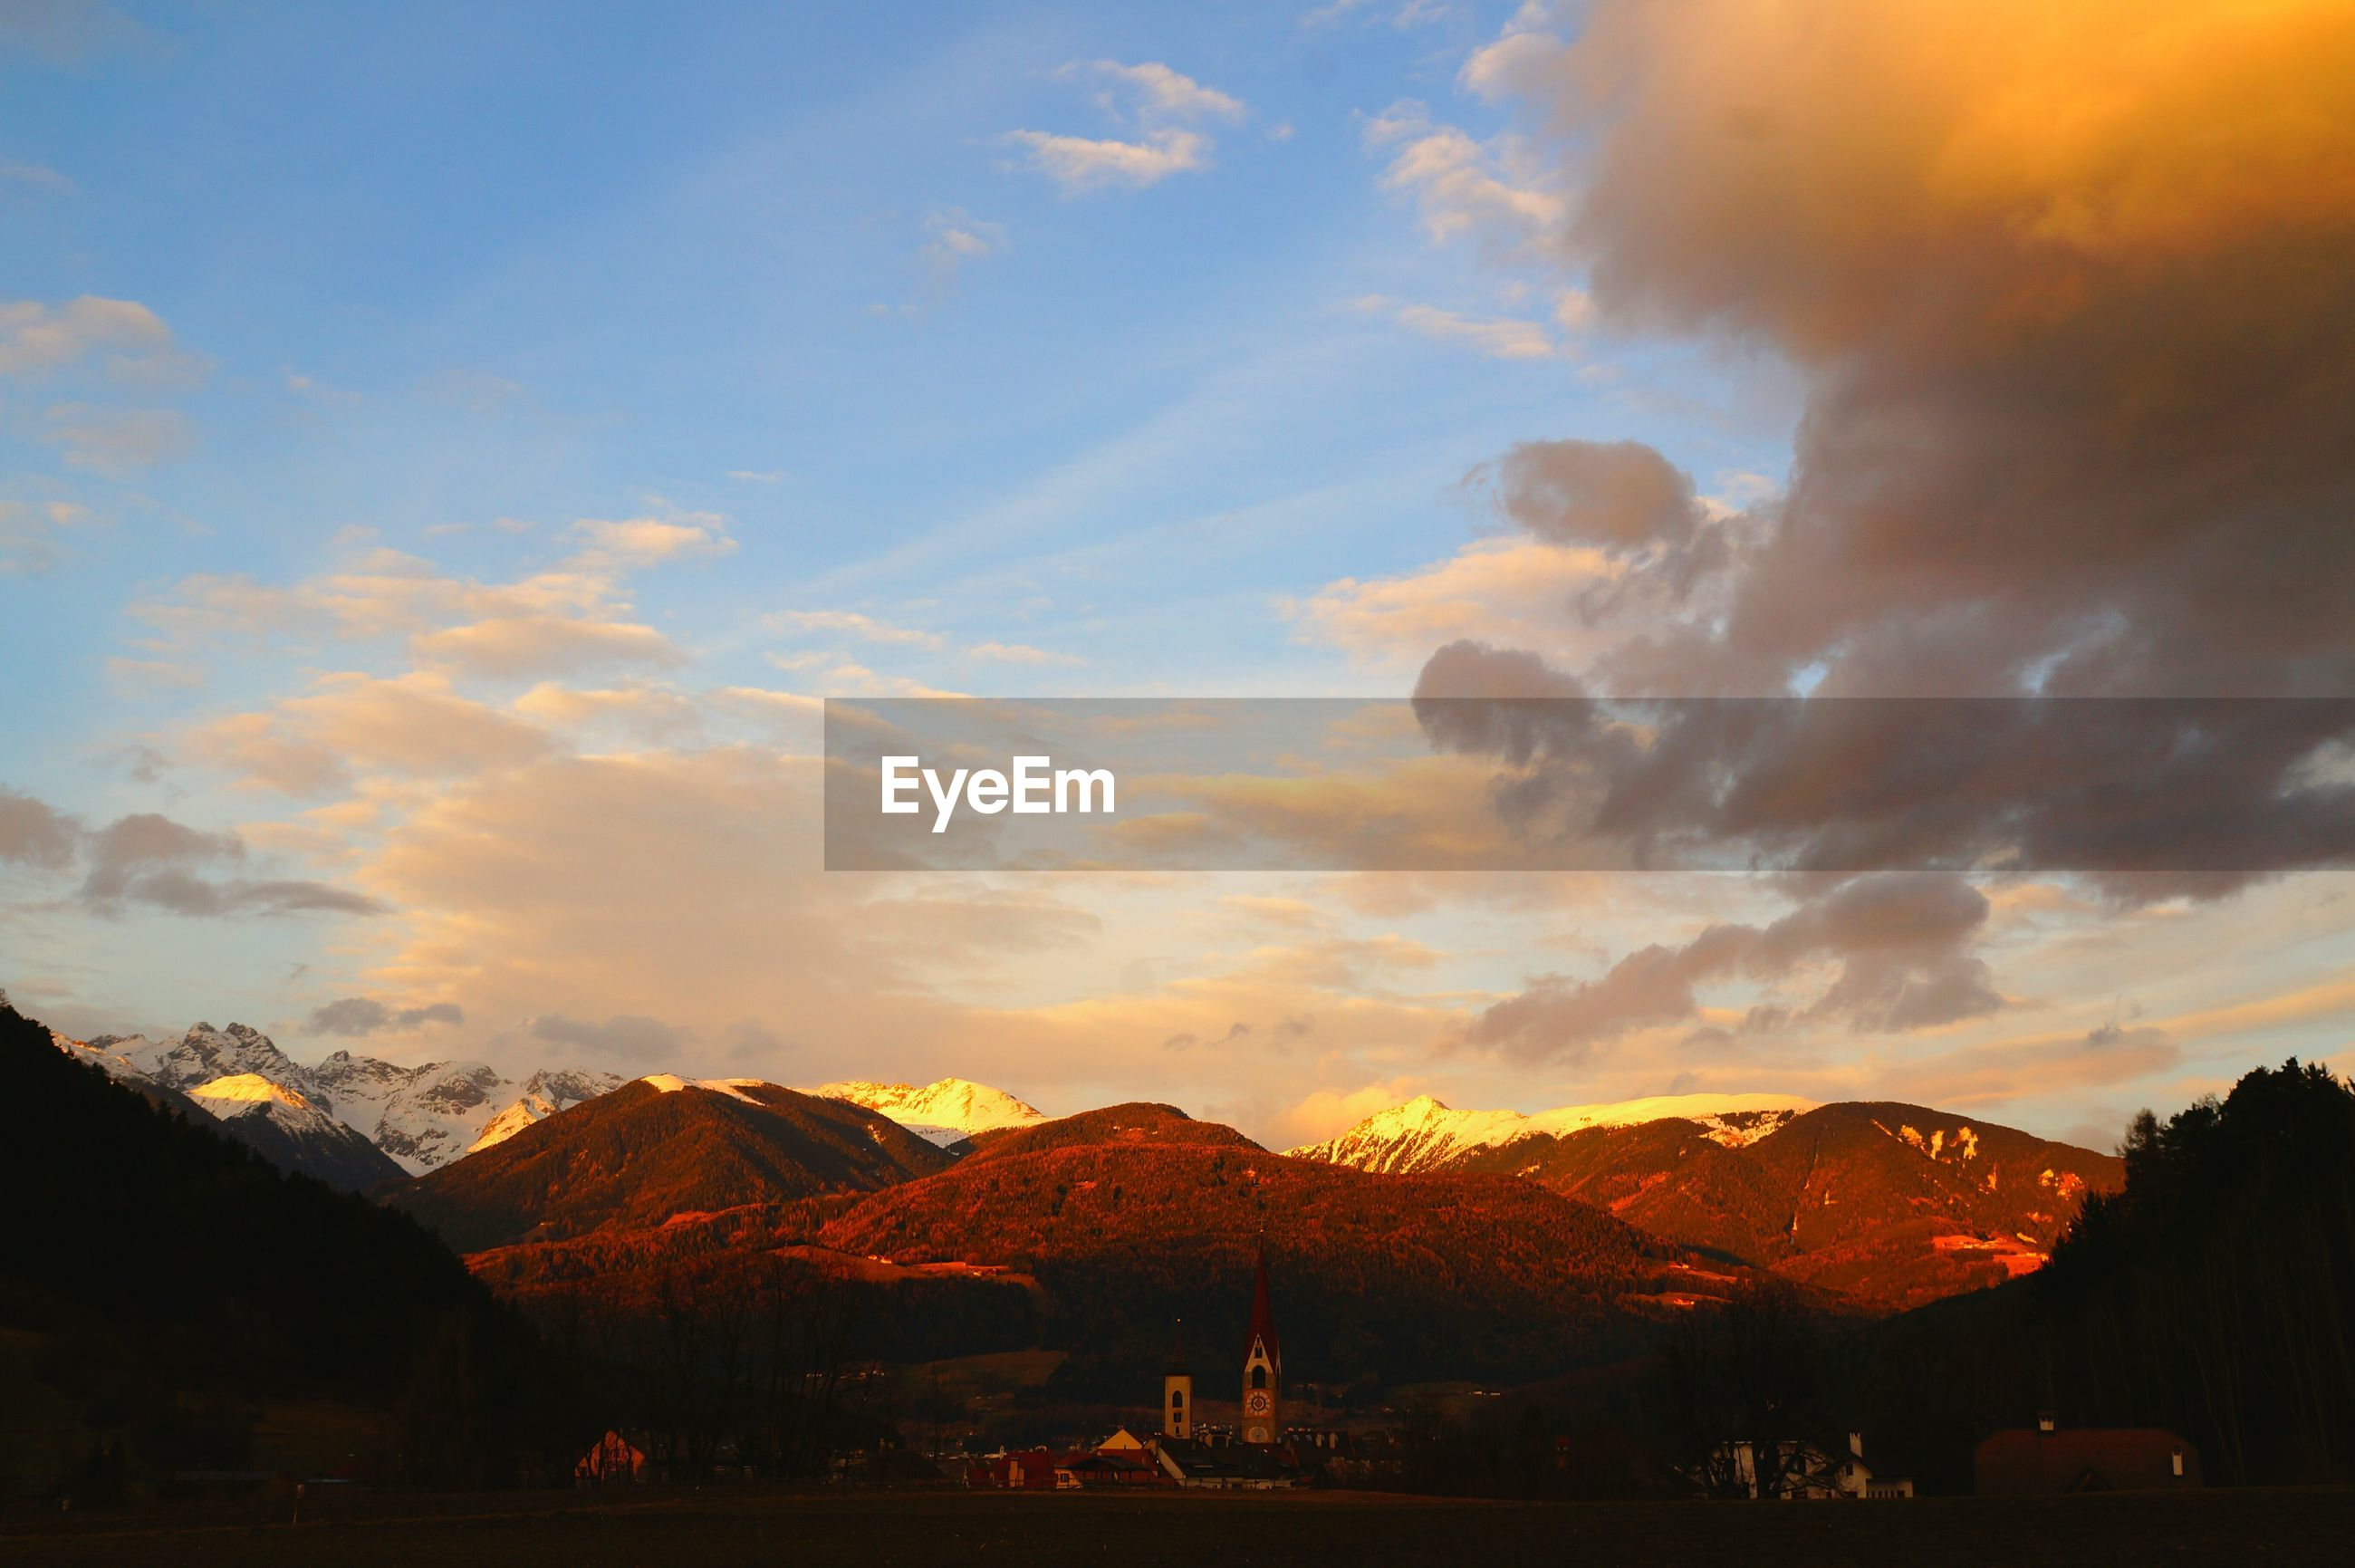 sunset, sky, beauty in nature, cloud - sky, nature, silhouette, scenics, no people, mountain, outdoors, day